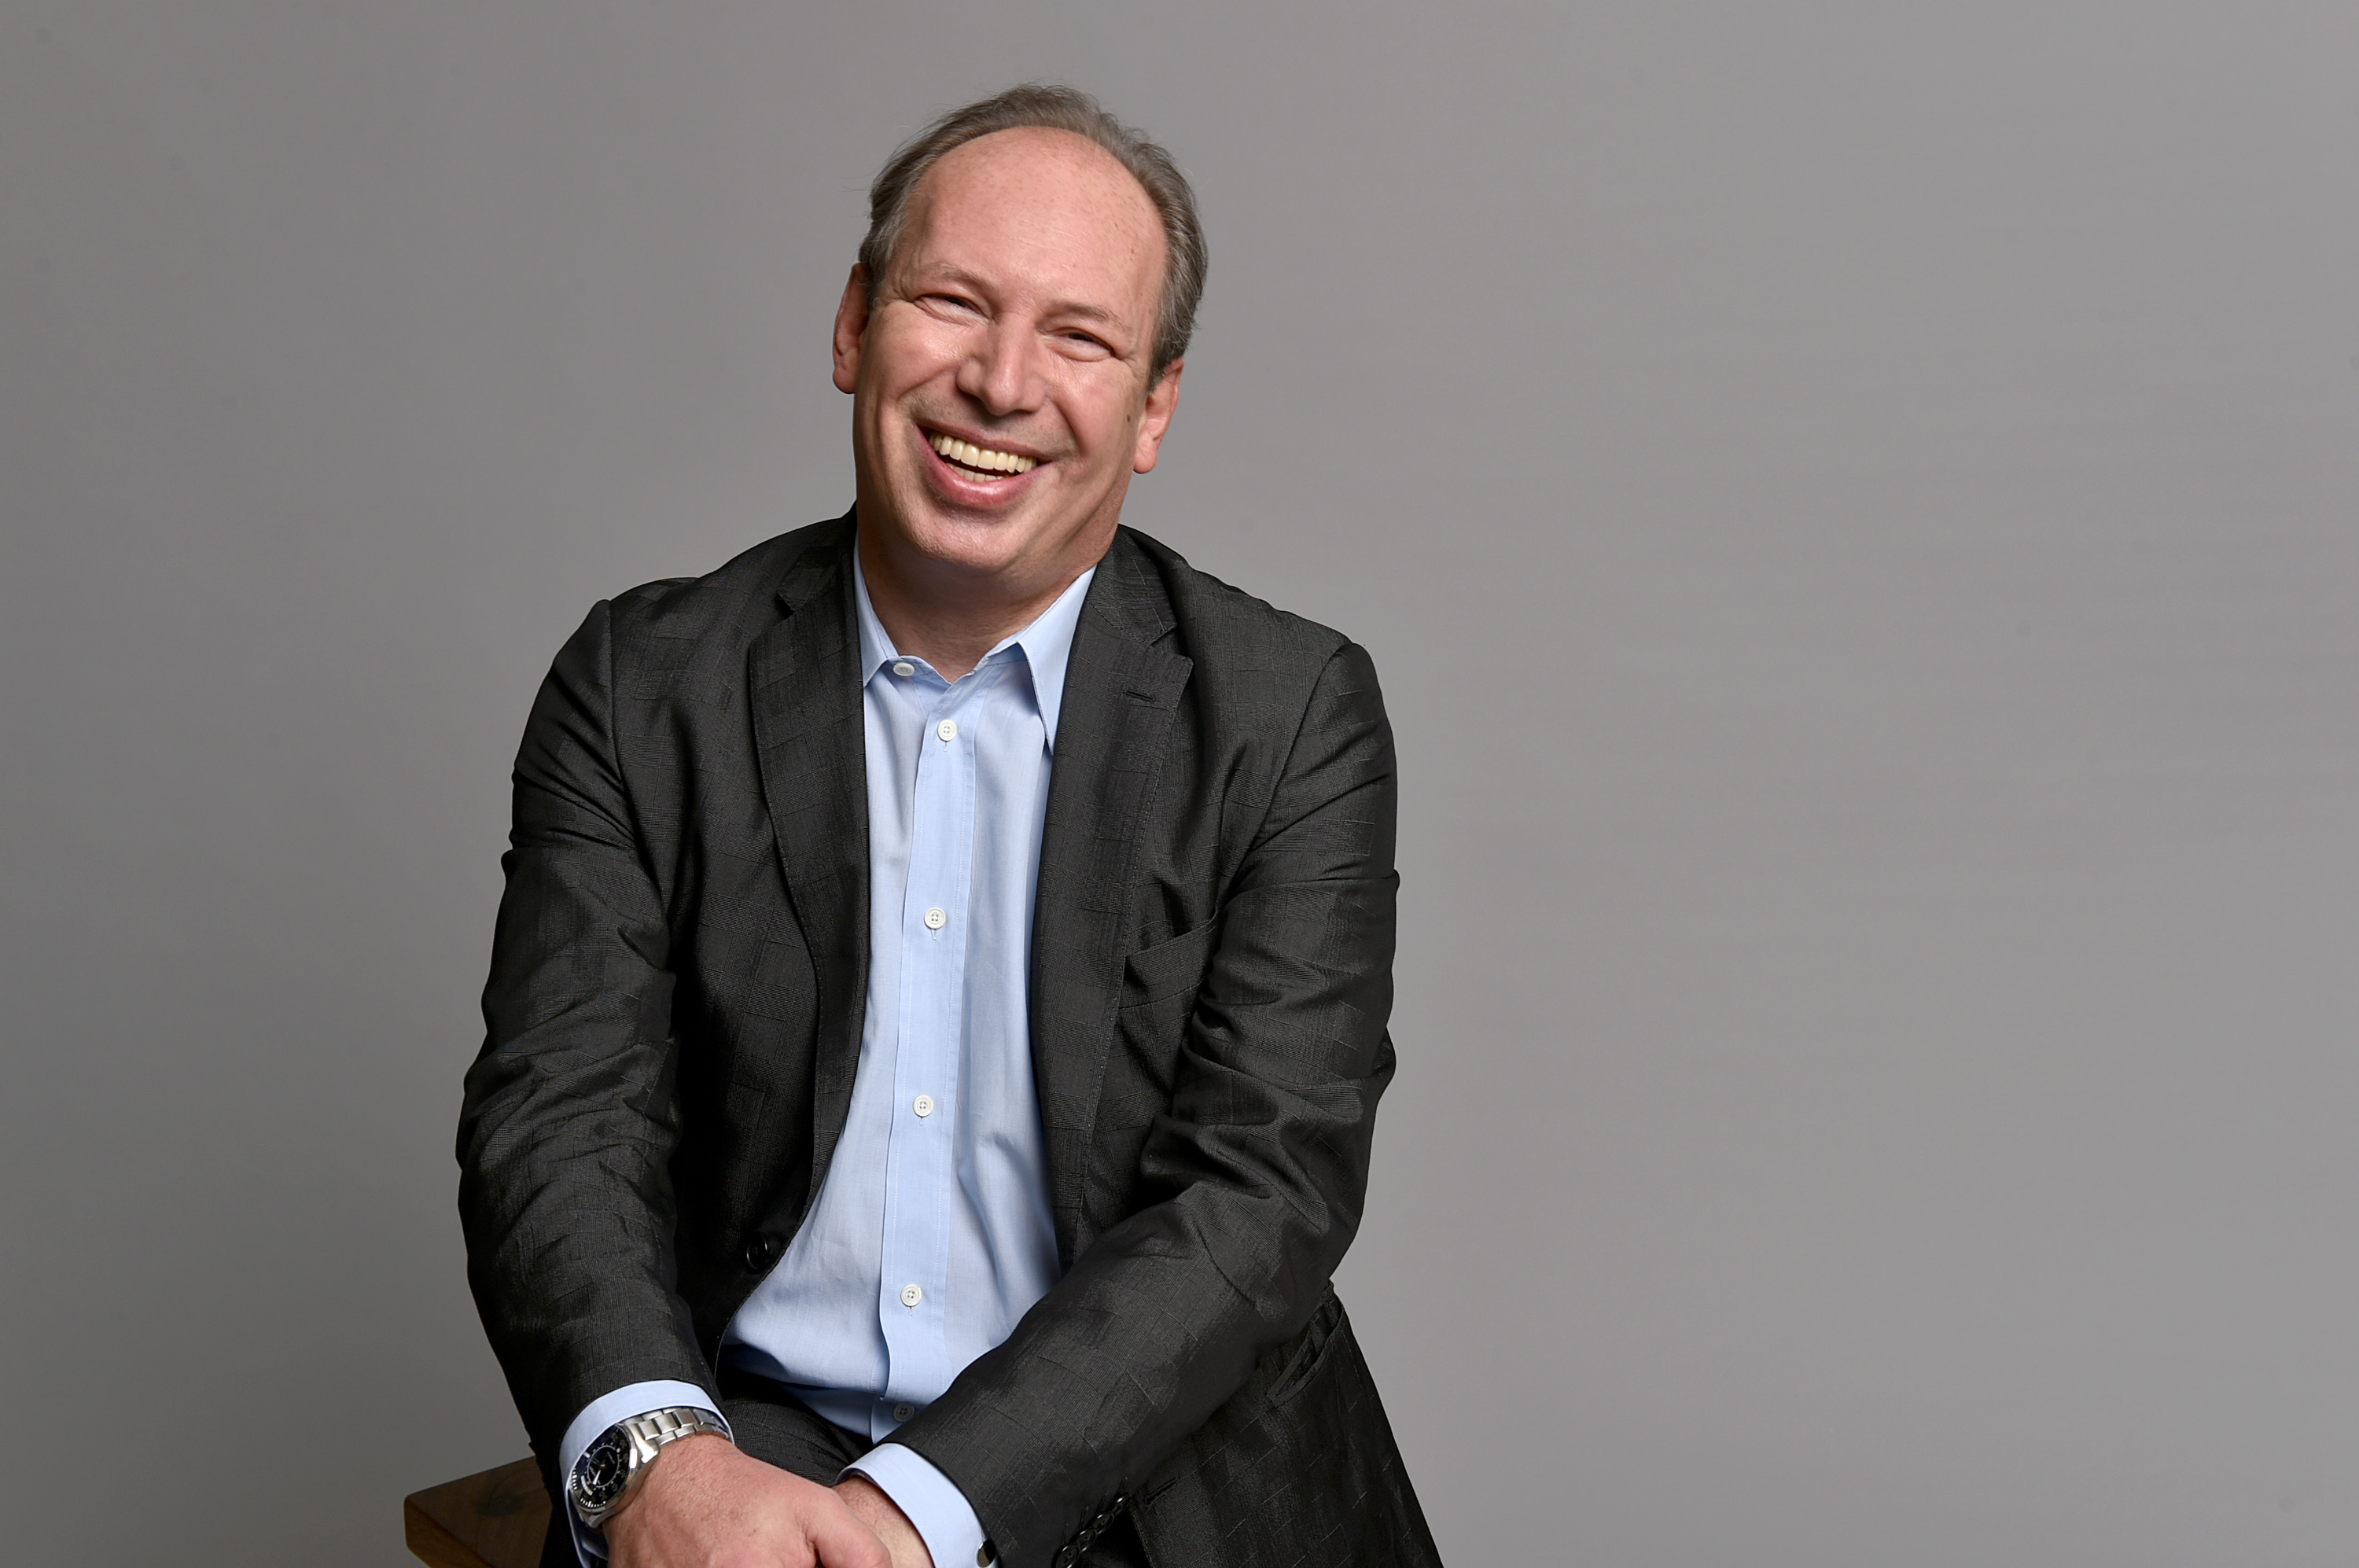 hans zimmer 2432k followers, 136 following, 135 posts - see instagram photos and videos from hans zimmer (@hanszimmer.